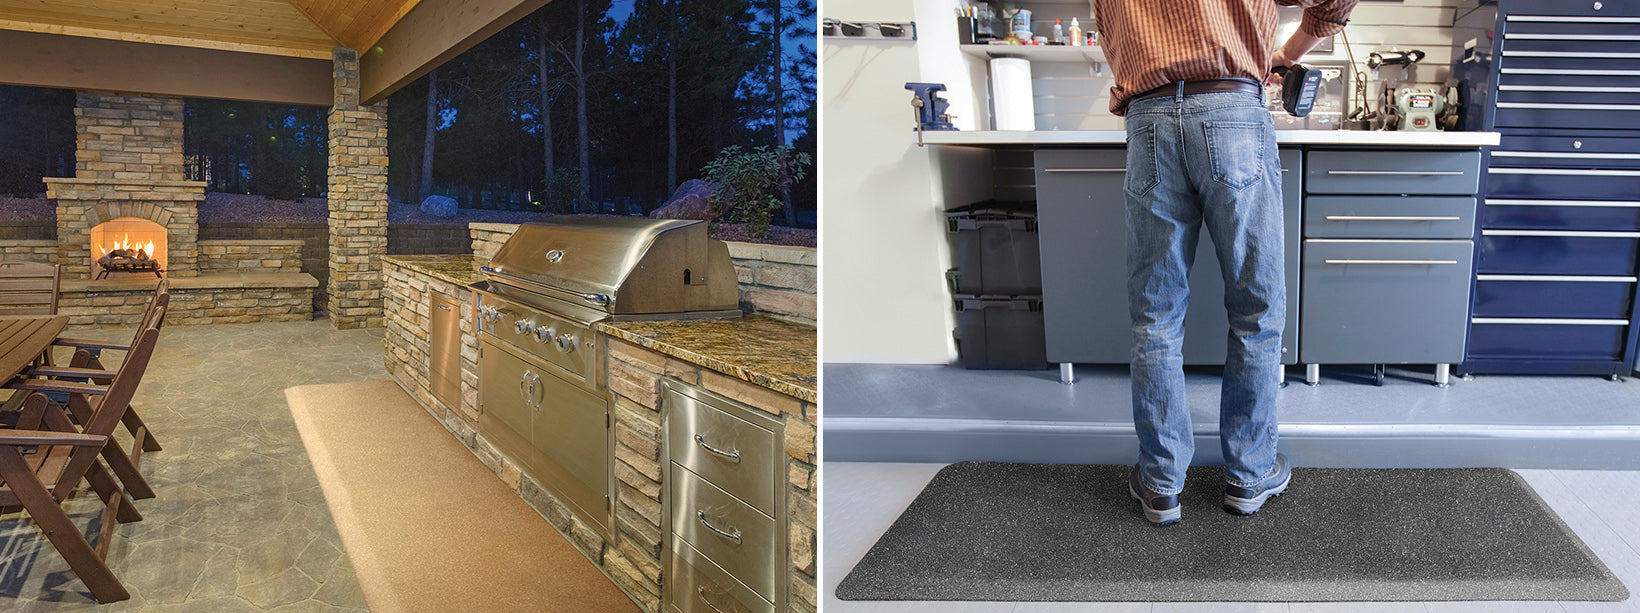 Granite Gold PuzzlePiece Runner in outdoor kitchen and Granite Steel in the garage